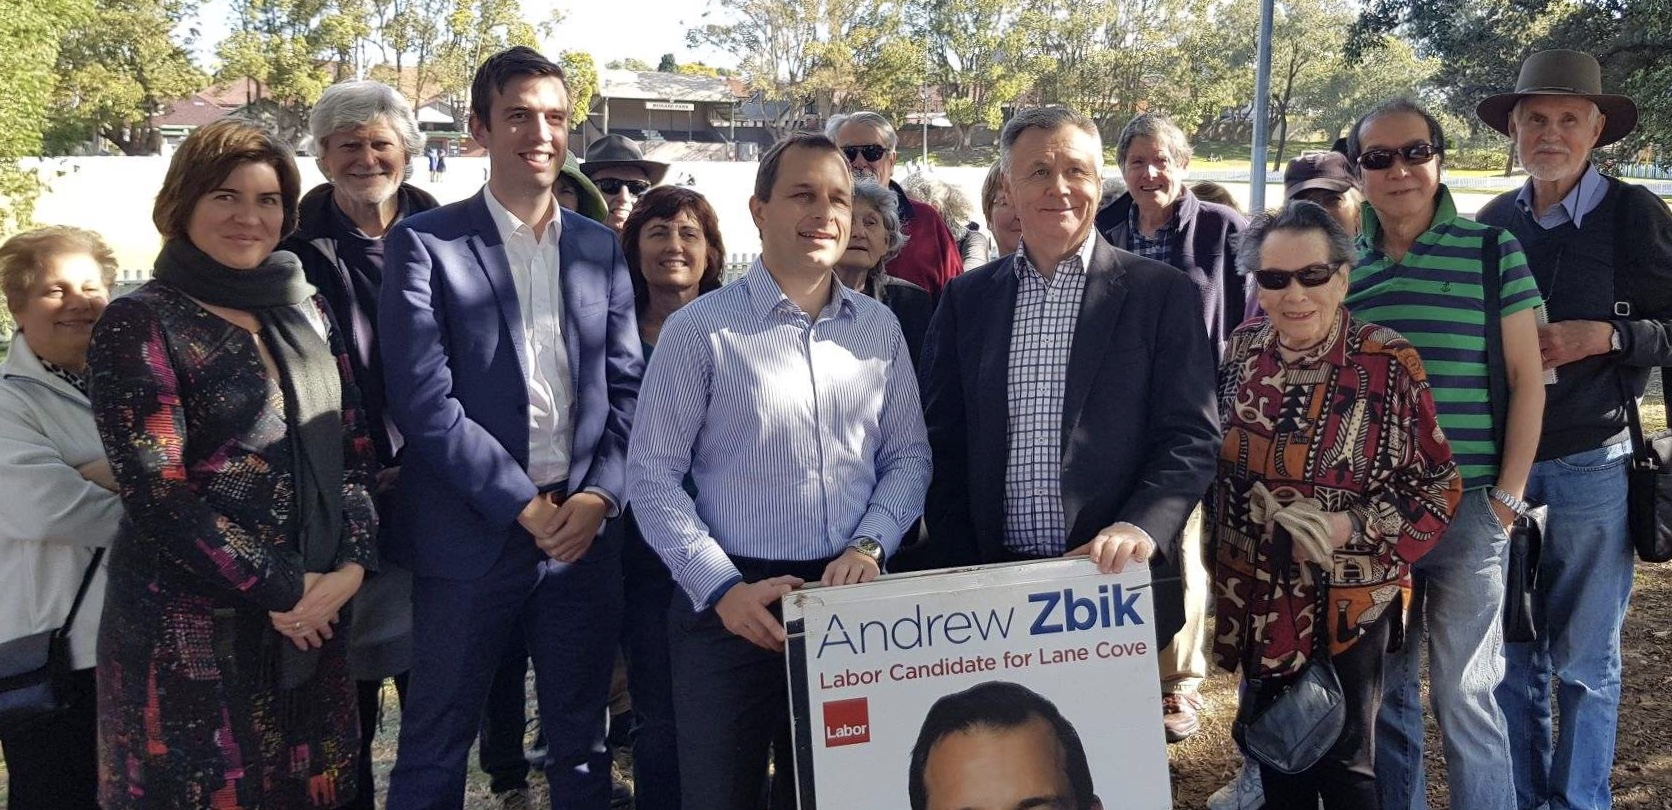 Labor Candidate for Lane Cove - Andrew Zbik and Mick Veitch MLC - NSW Shadow Minister for Lands